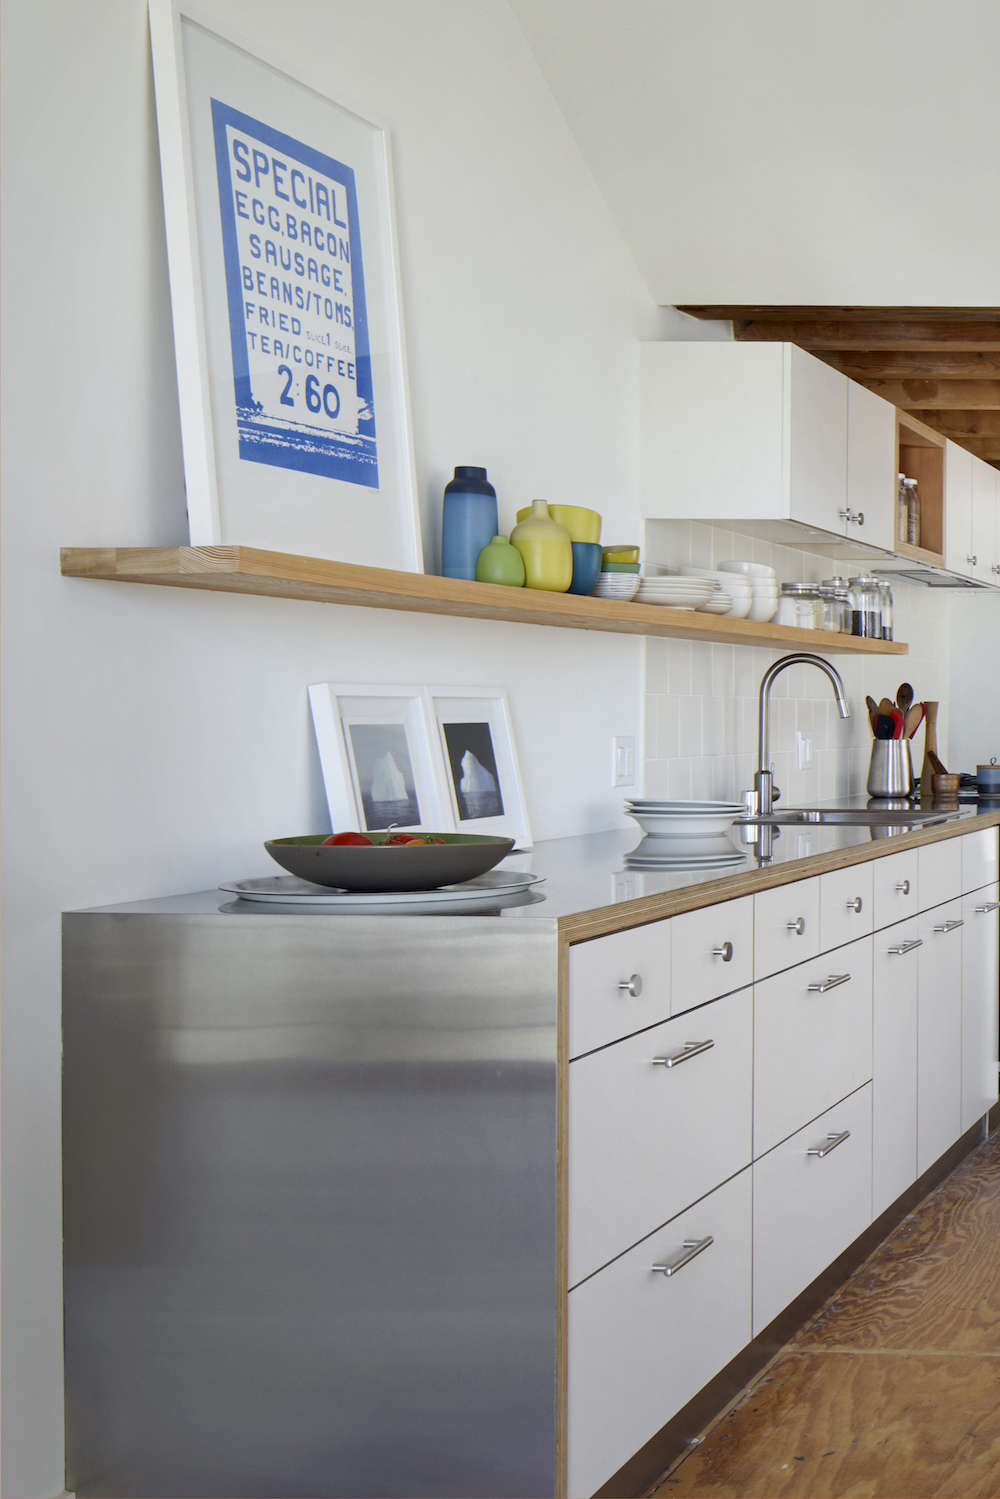 kitchen rehab cabinets doors only of the week a budget in santa monica rental loft la by oonagh ryan architects remodelista